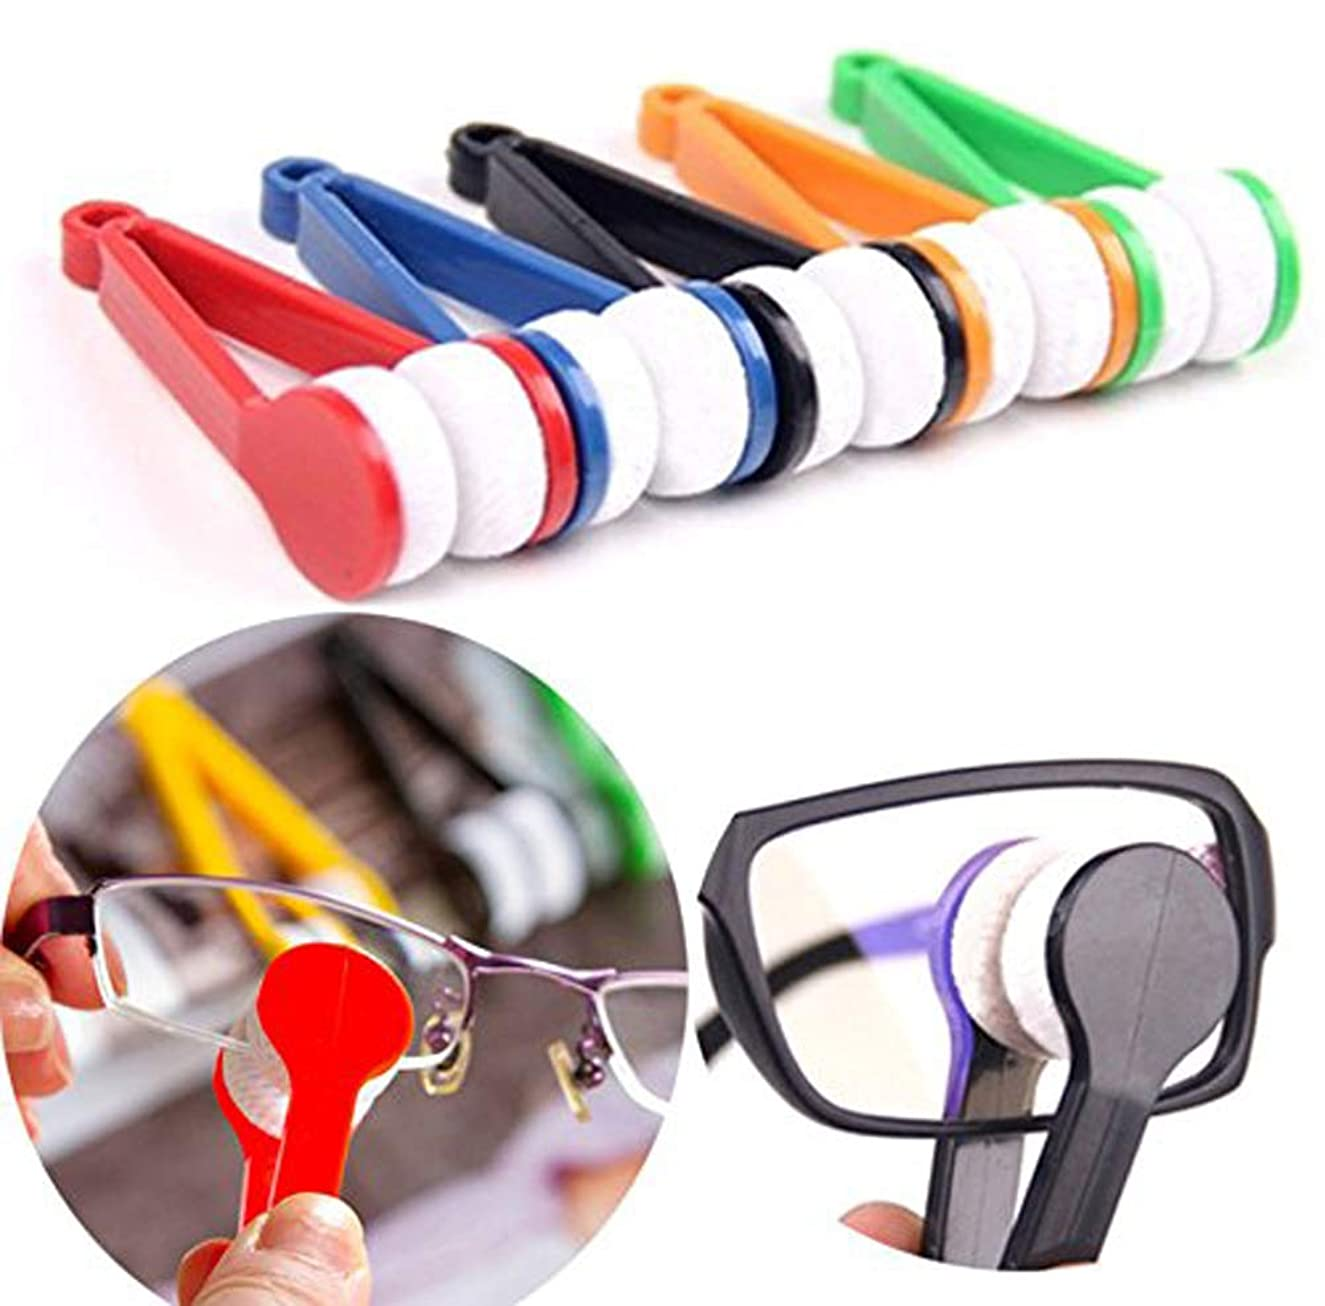 10pcs Microfiber Multi-functional Portable Mini Sun Glasses Eyeglass Spectacles Cleaner Brush Cleaning Clip Tool(Random Color) (10)